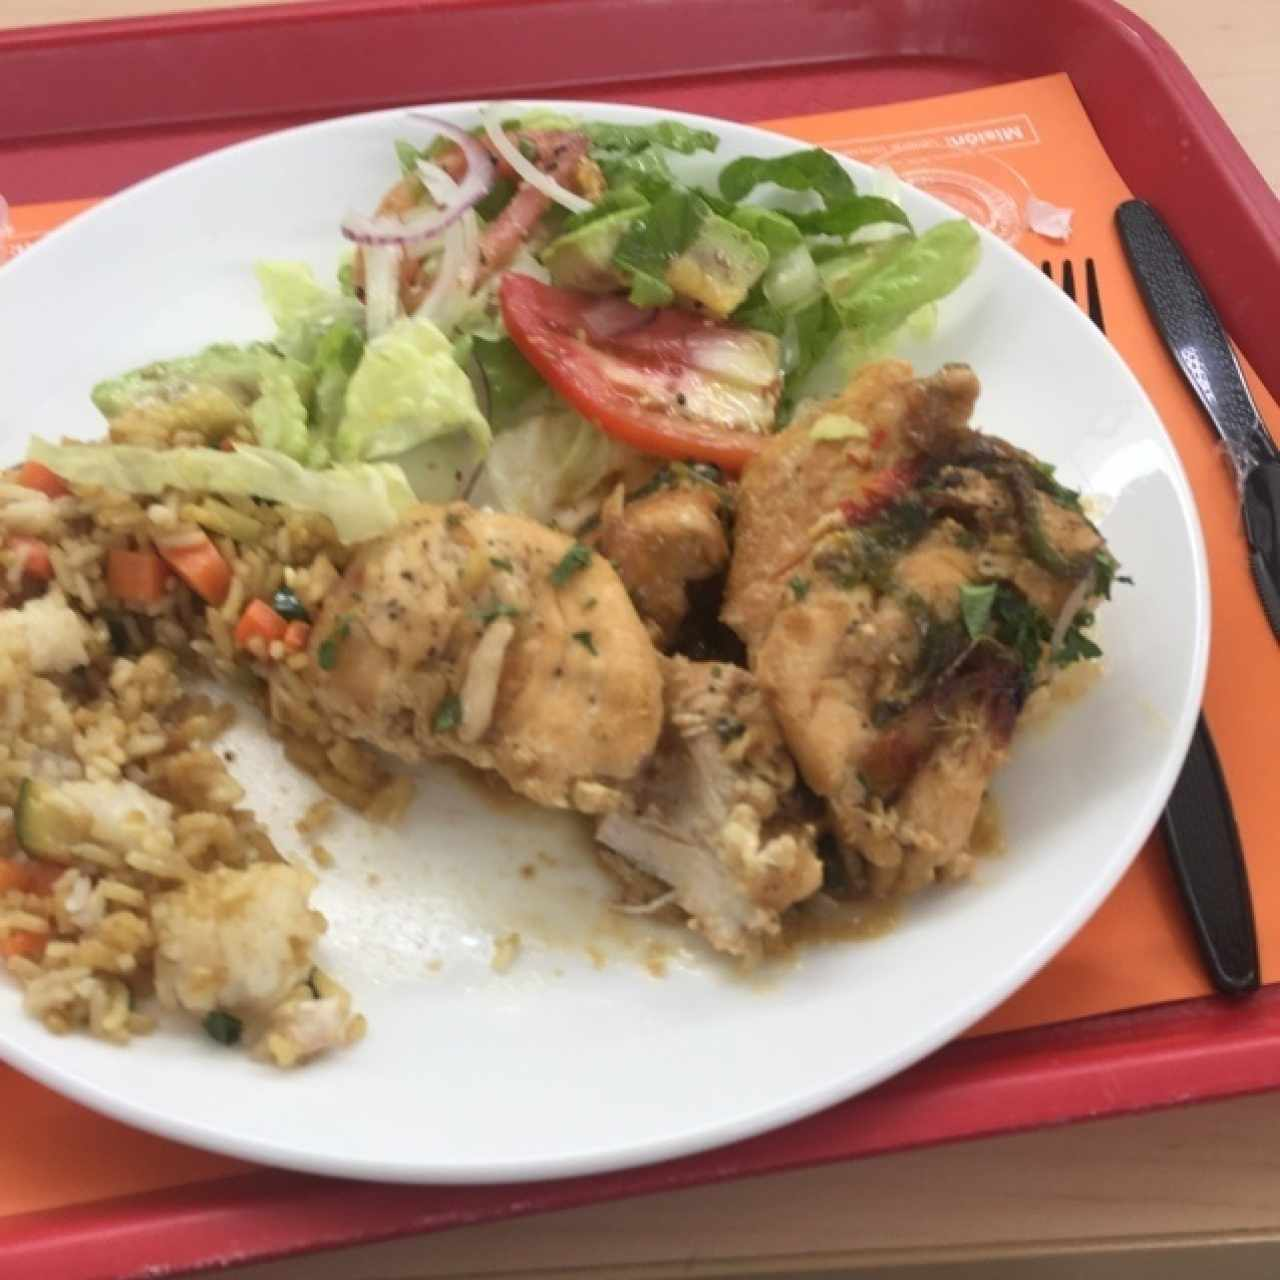 Pollo, arroz con vegetales, ensalada mixta